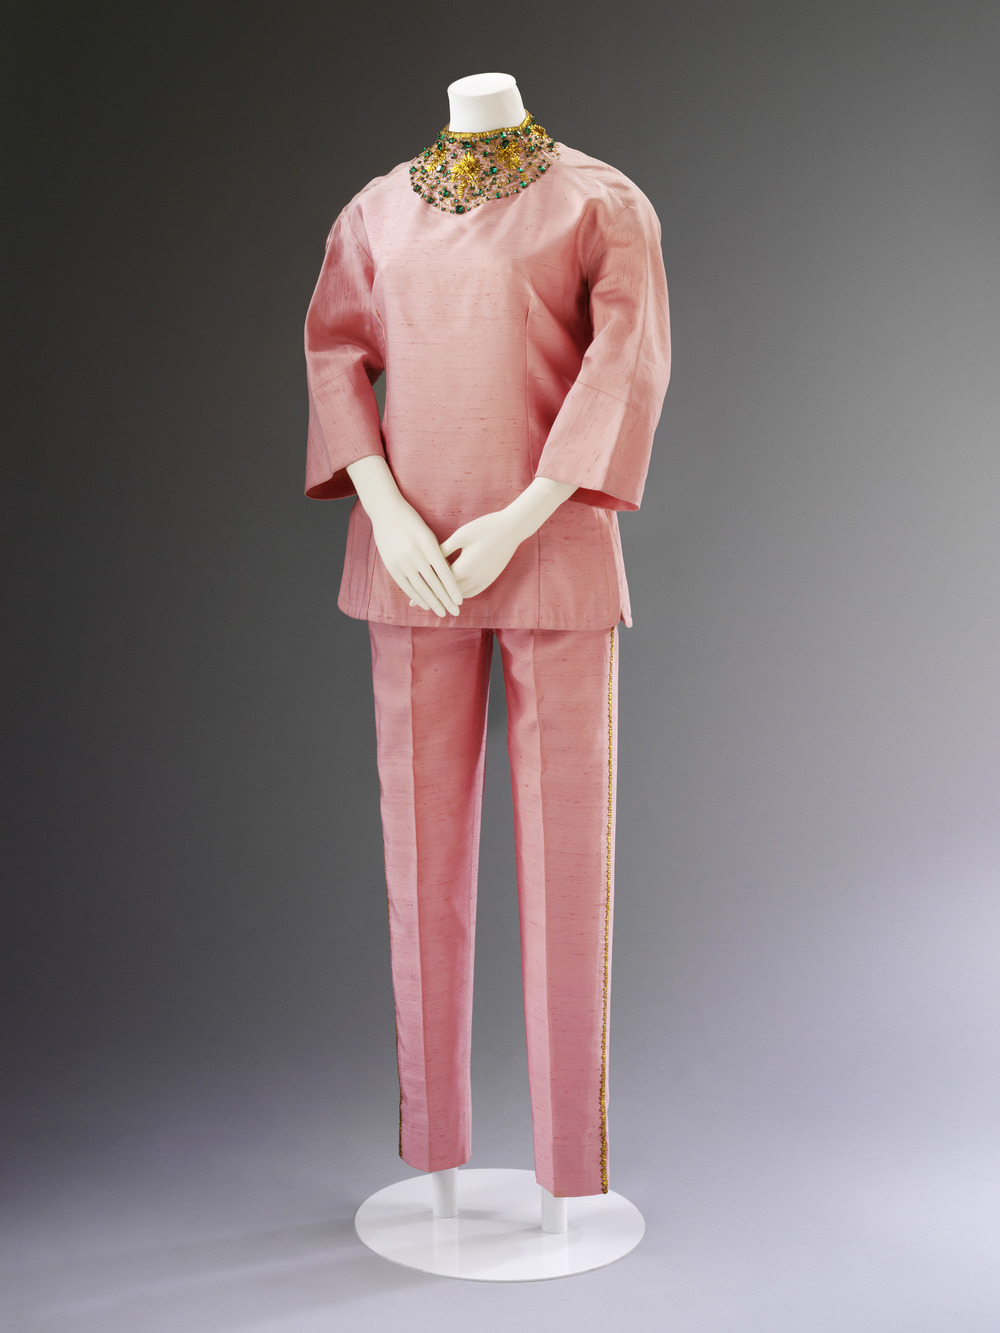 Irene Galitzine, silk palazzo pyjamas, ca. 1963. Courtesy Historical Archive Maison Galitzine. Photo © Victoria and Albert Museum, London